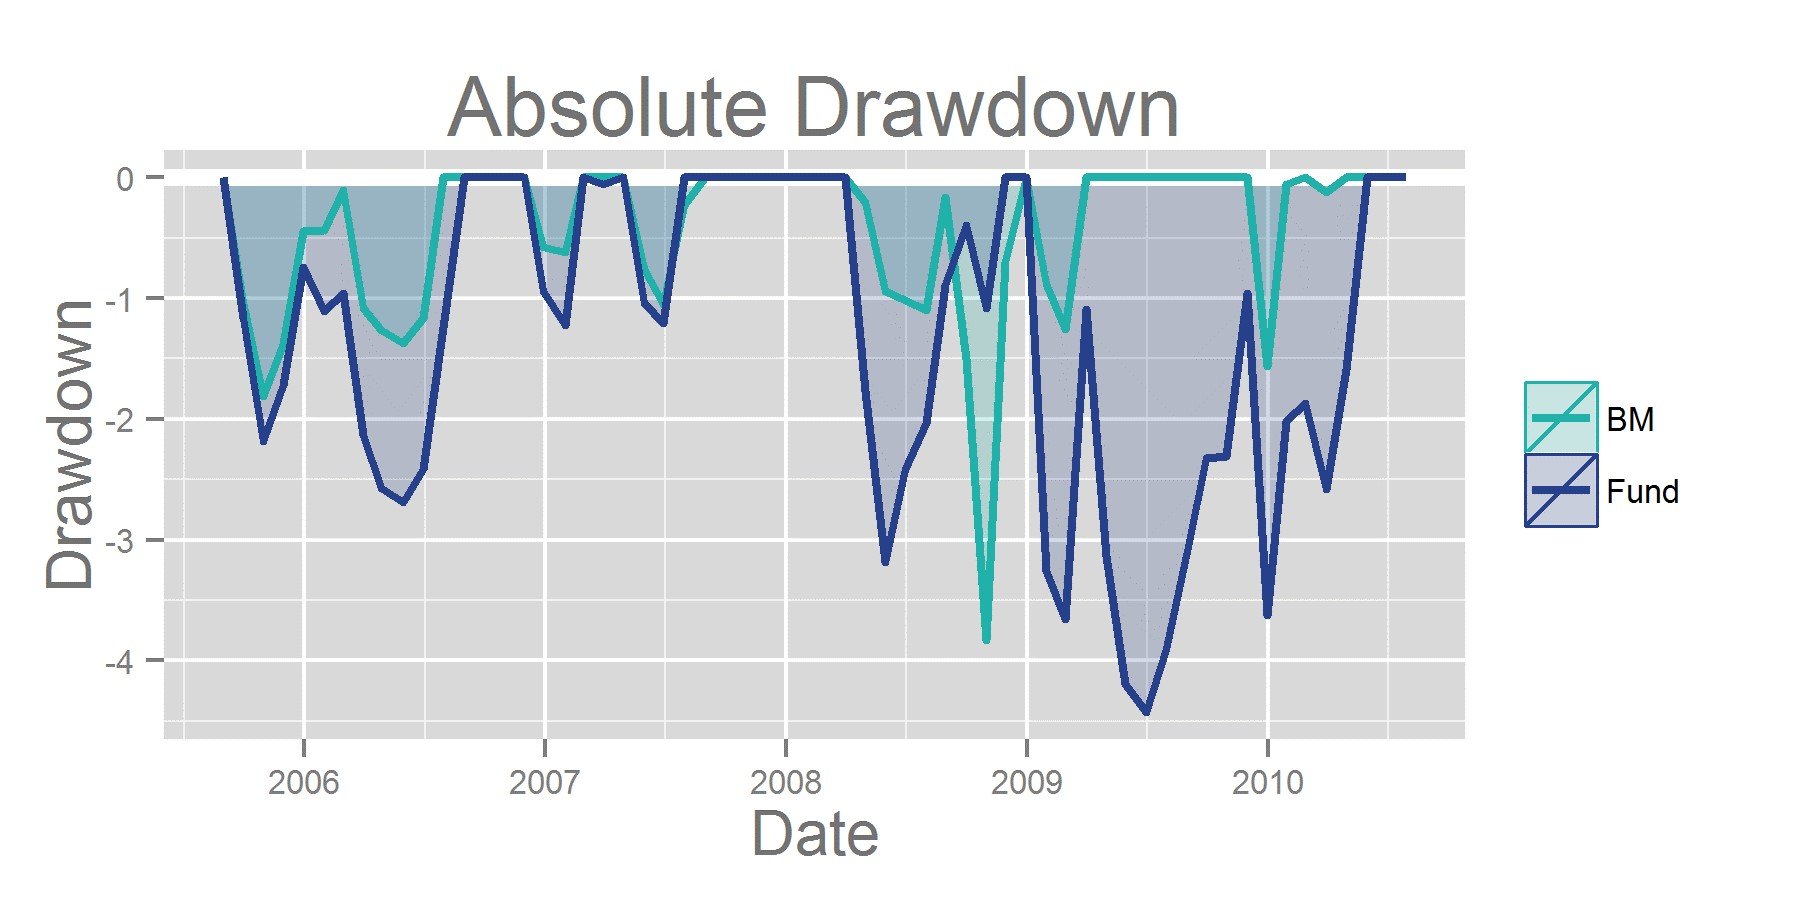 Absolute Drawdown